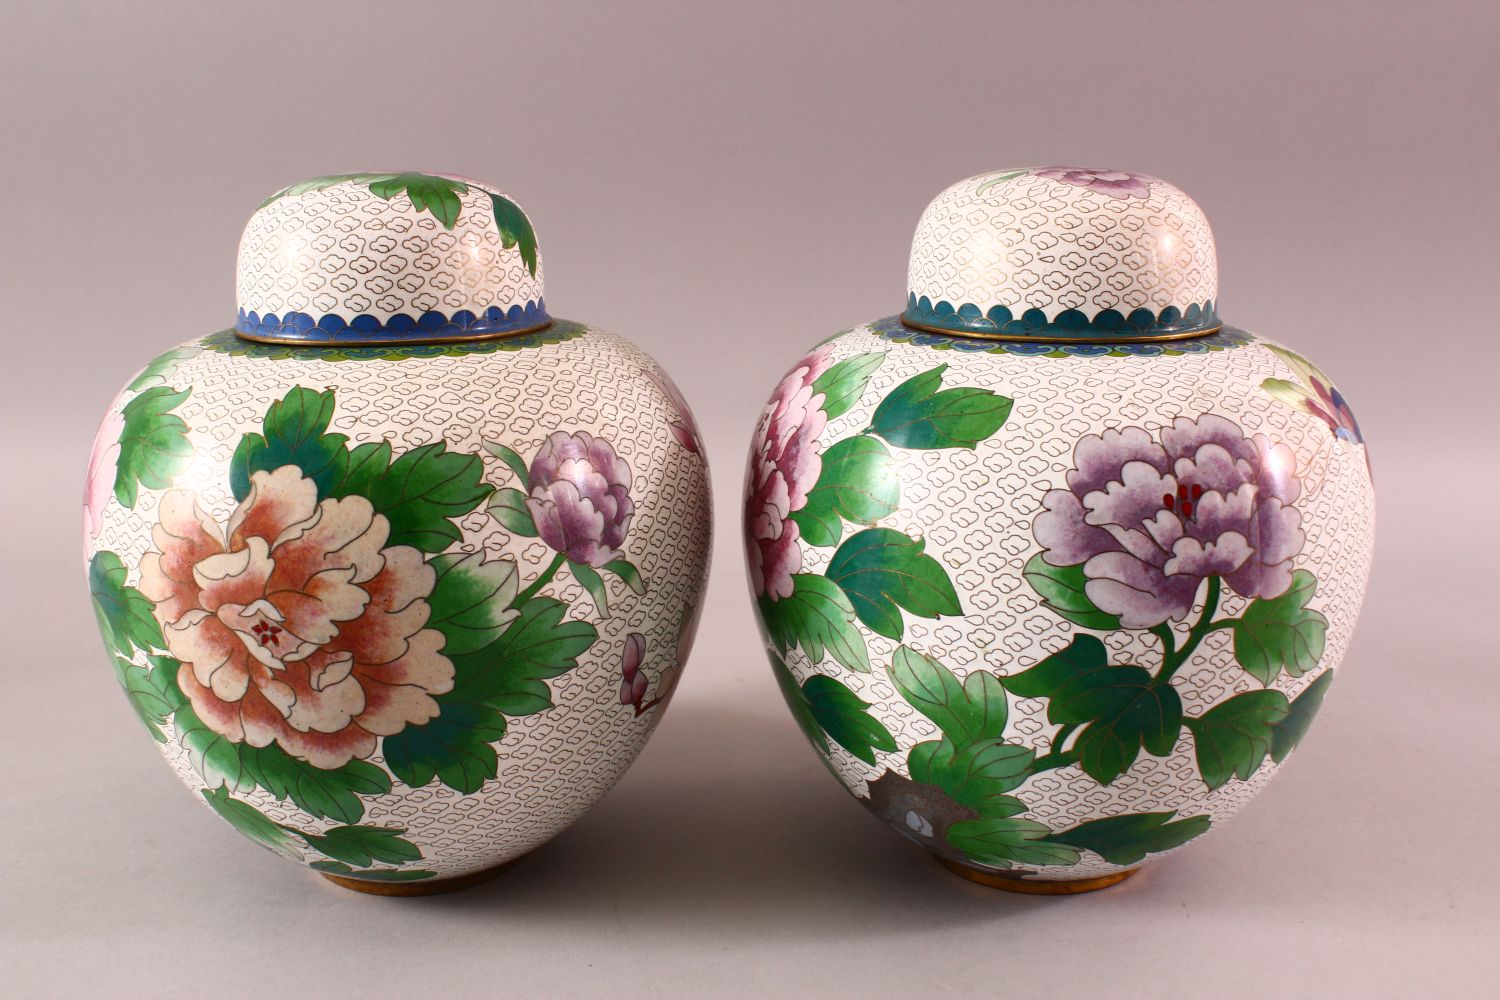 A PAIR OF CHINESE CLOISONNE GINGER JARS & COVERS, each with a white ground and floral decoration, - Image 4 of 7